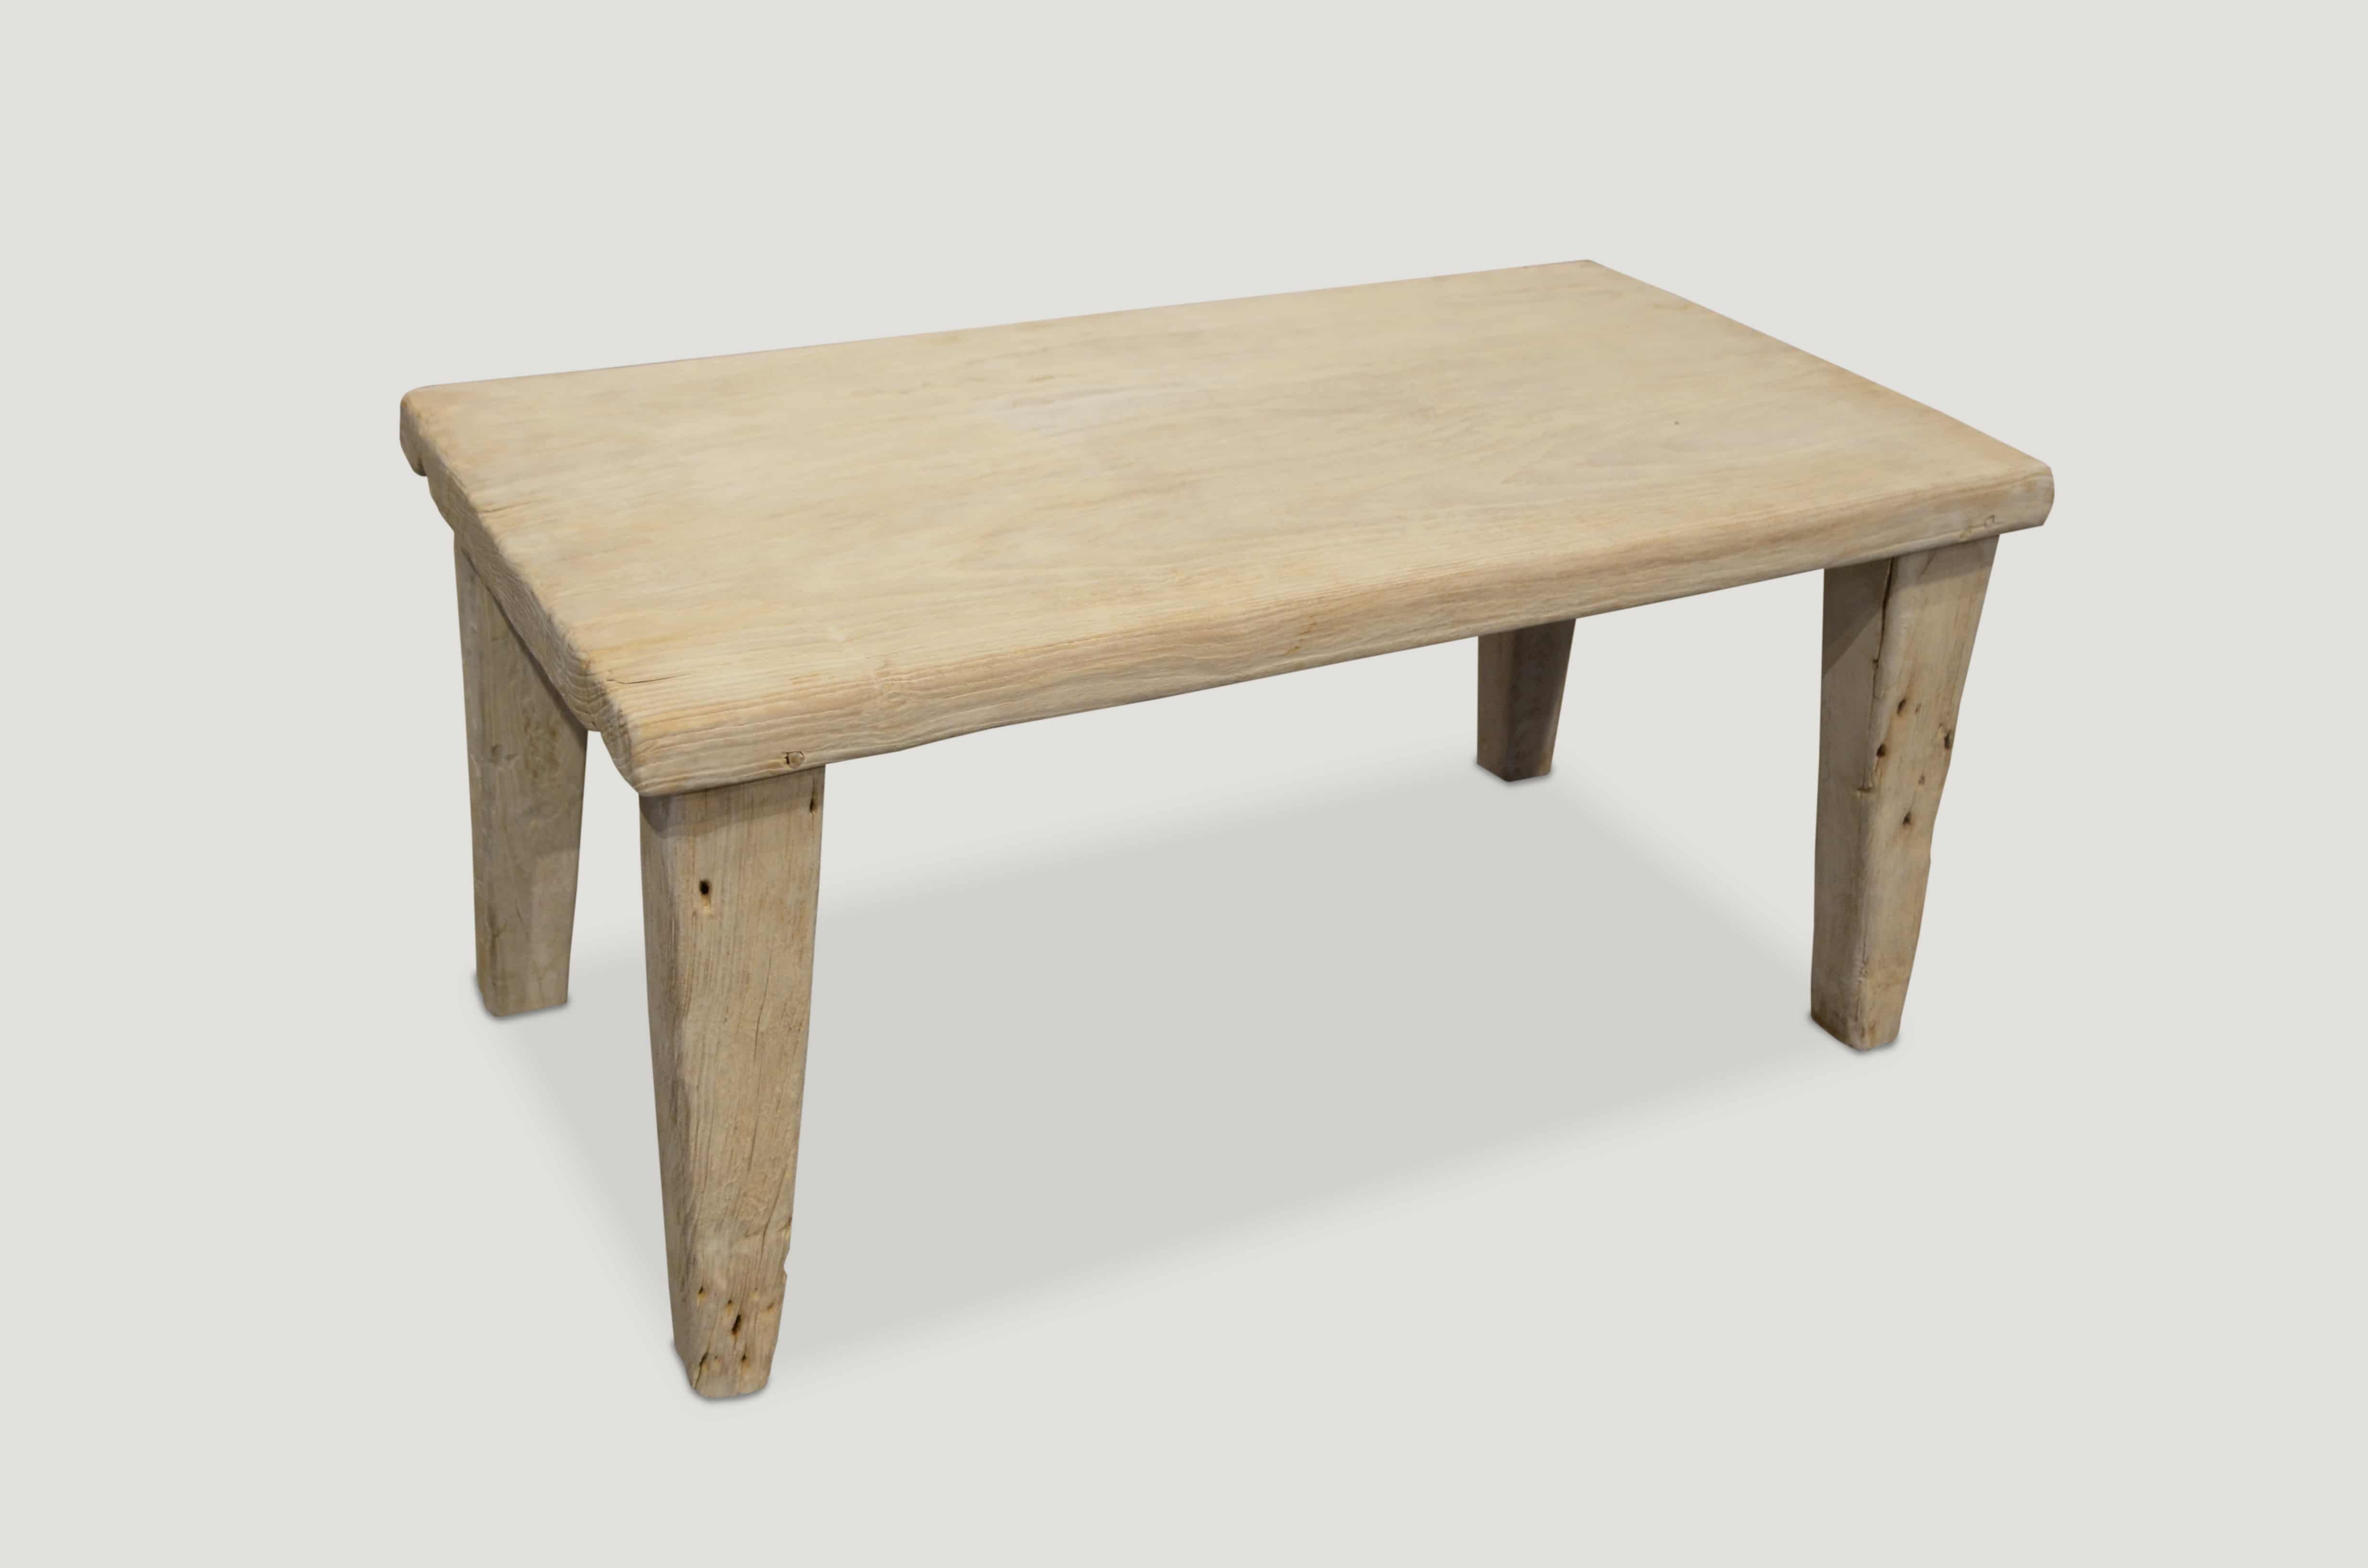 Bleached Teak Furniture St Barts Collection Teak Coffee Table